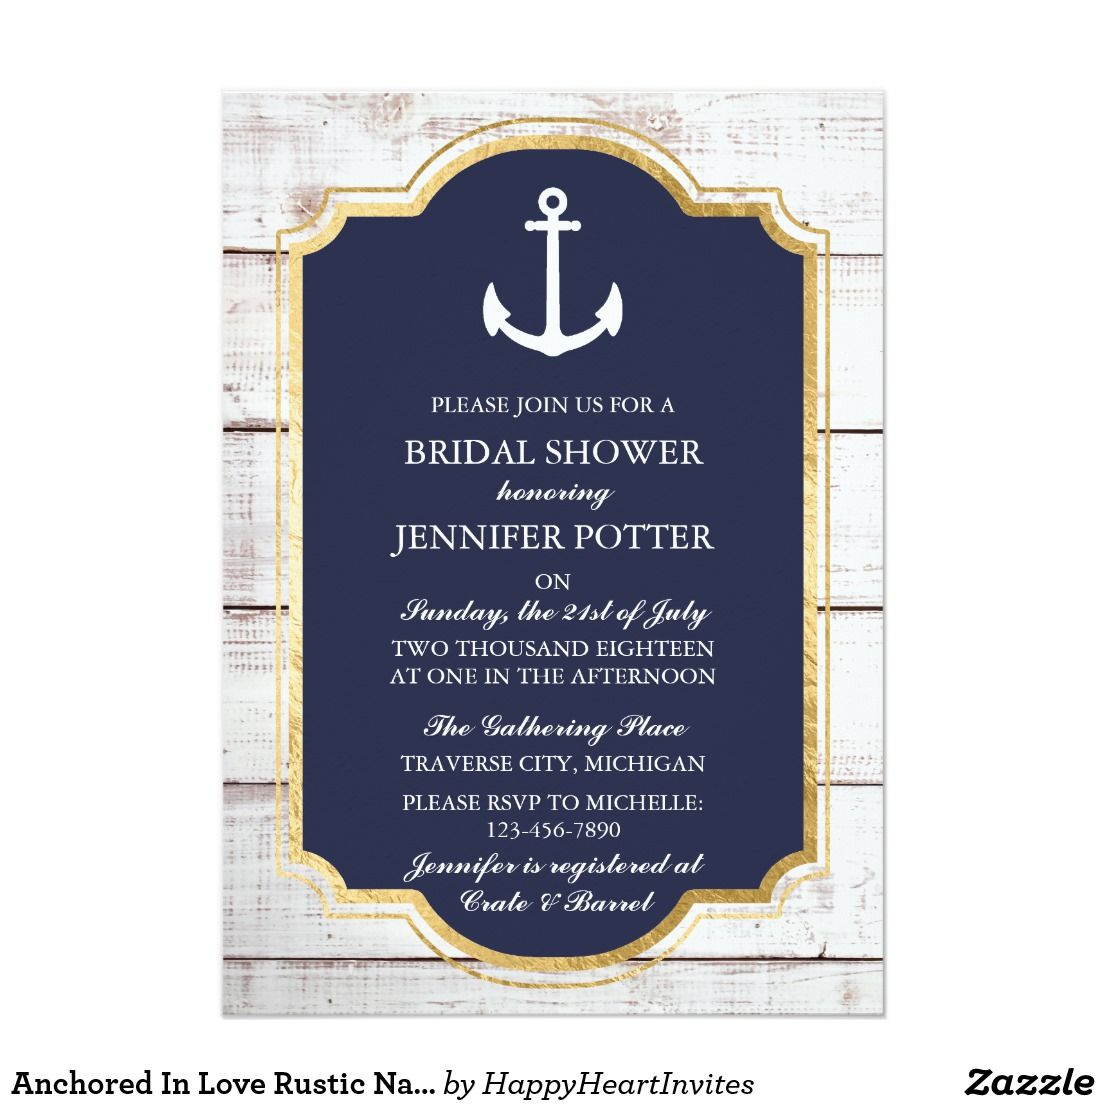 8ad129b287c Anchored In Love Rustic Nautical Bridal Shower Invitation